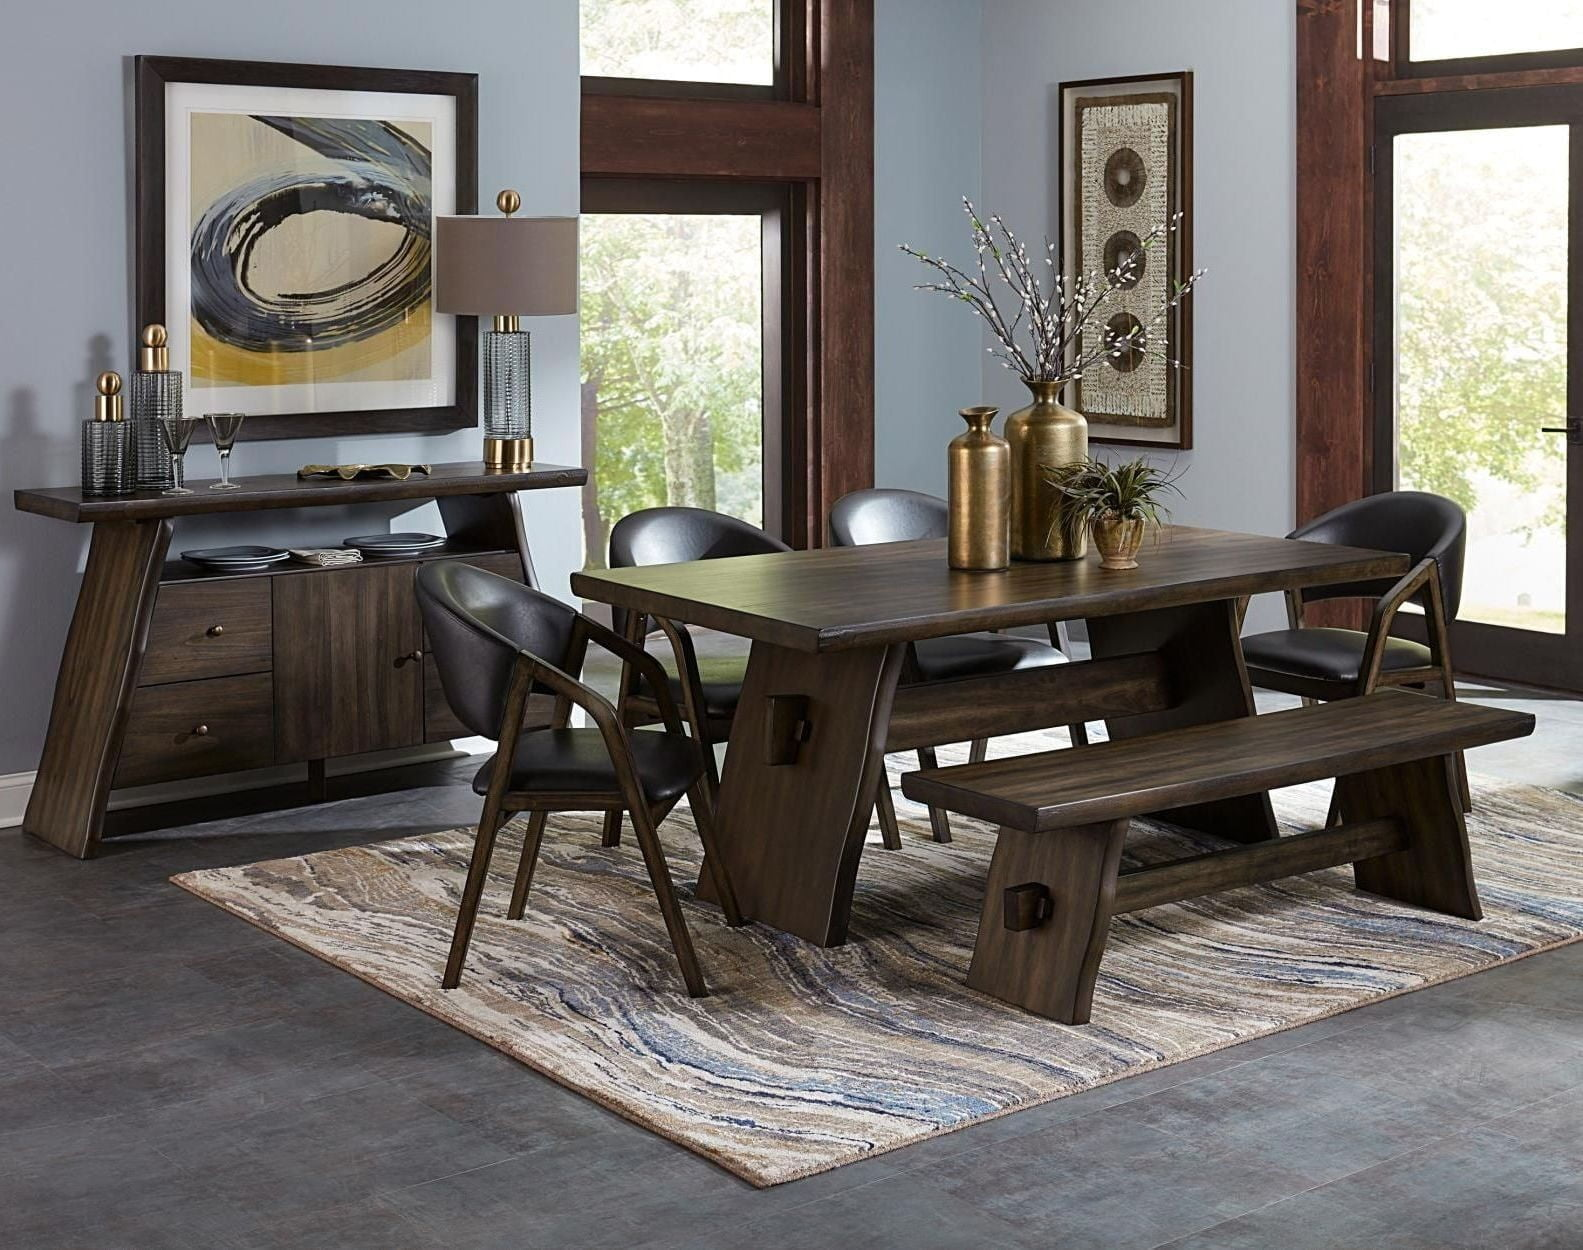 cabezon live edge rectangular dining room set from homelegance